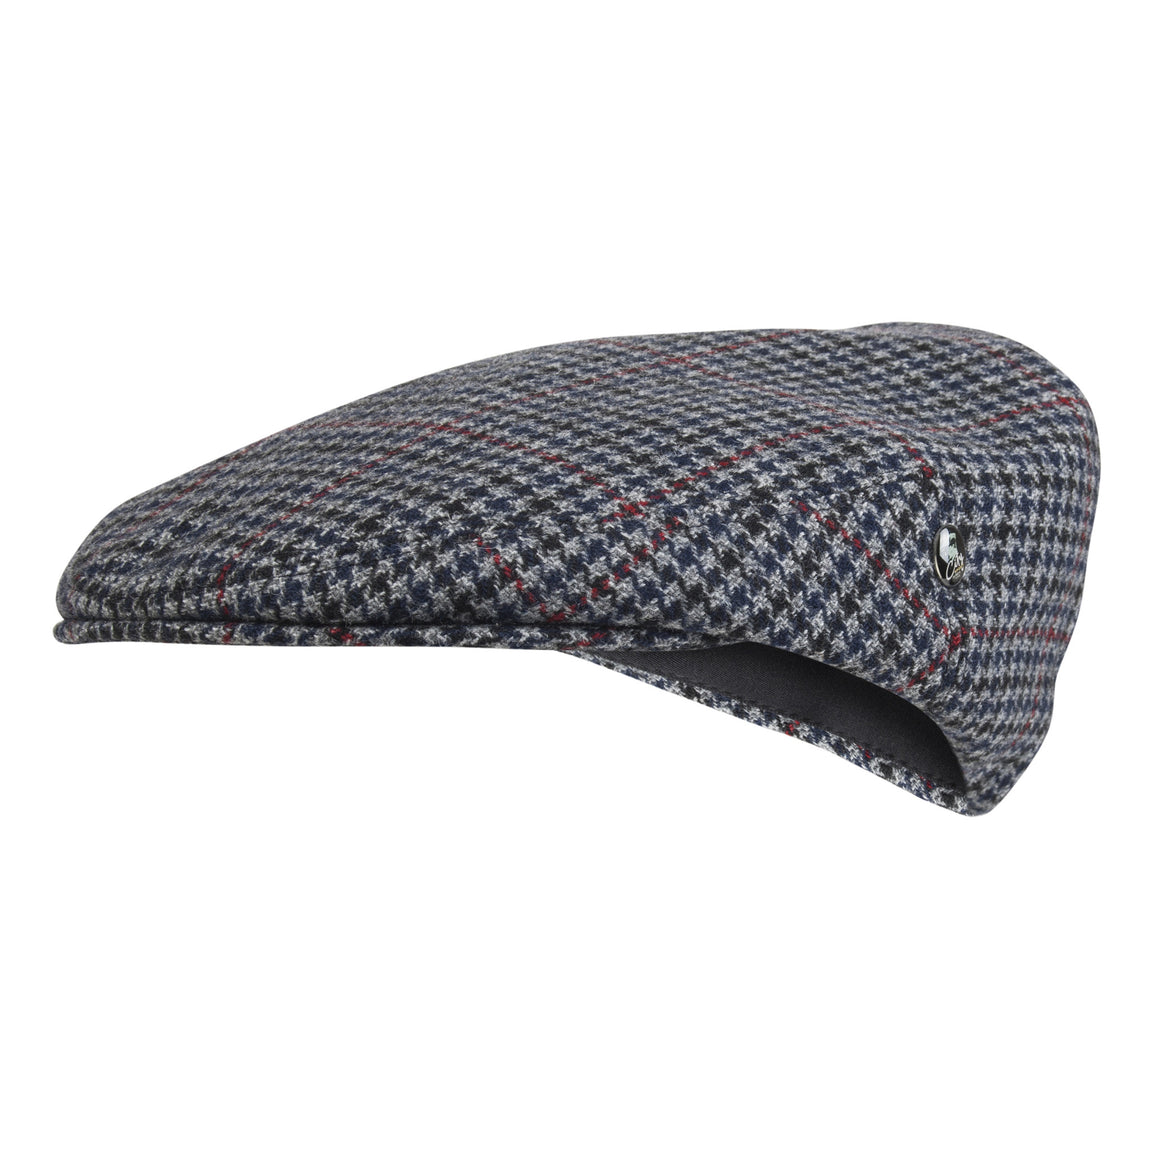 Wool Flat Cap | Grey Navy Houndstooth | buy now at The Cashmere Choice London